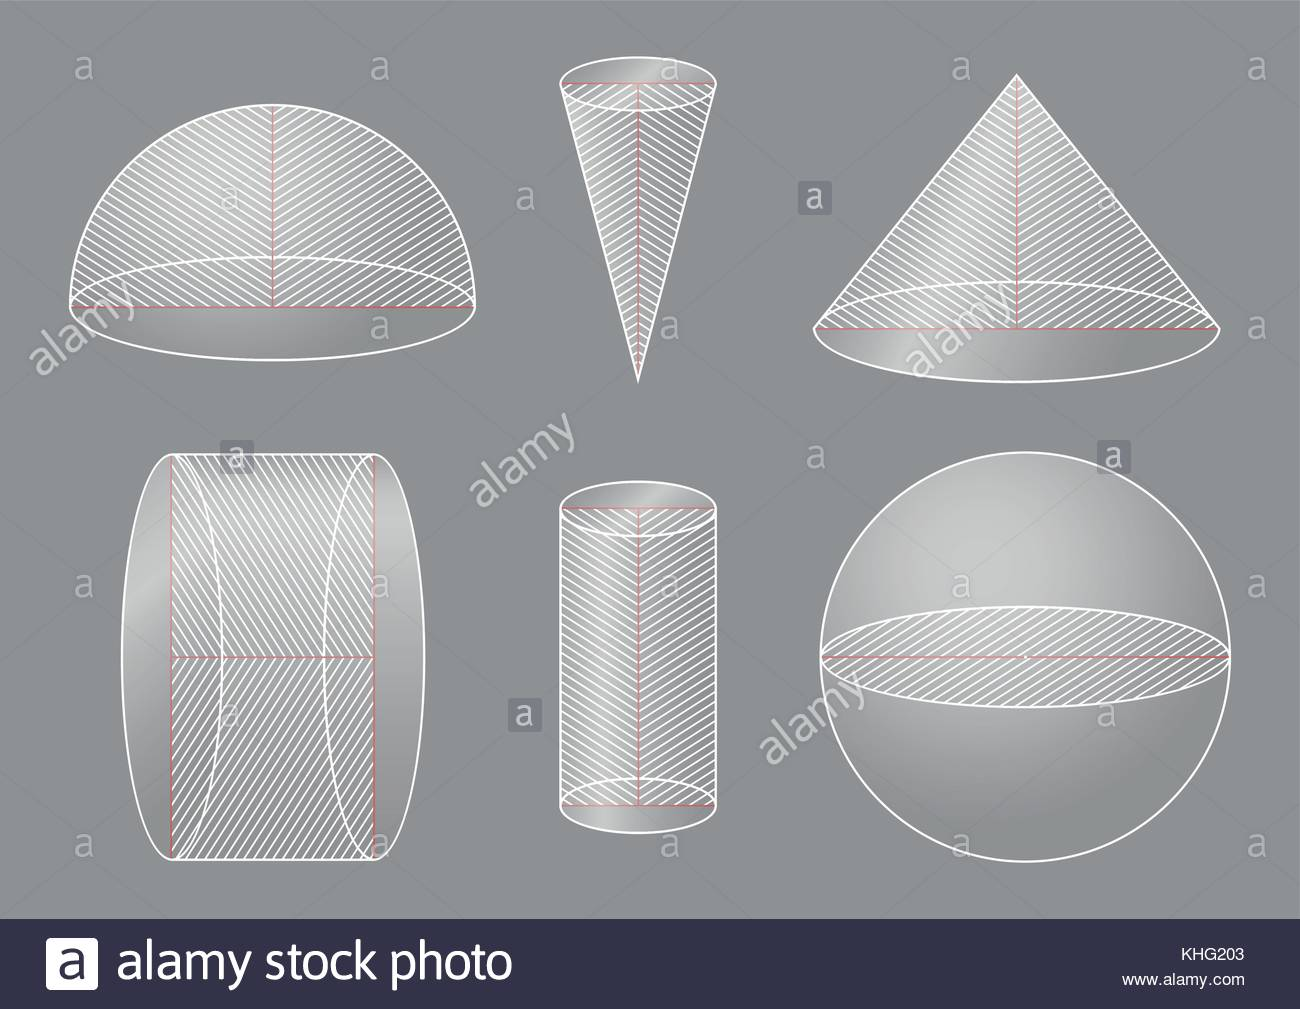 3d Basic Shapes Sphere Hemisphere Cone Cylinder Cross